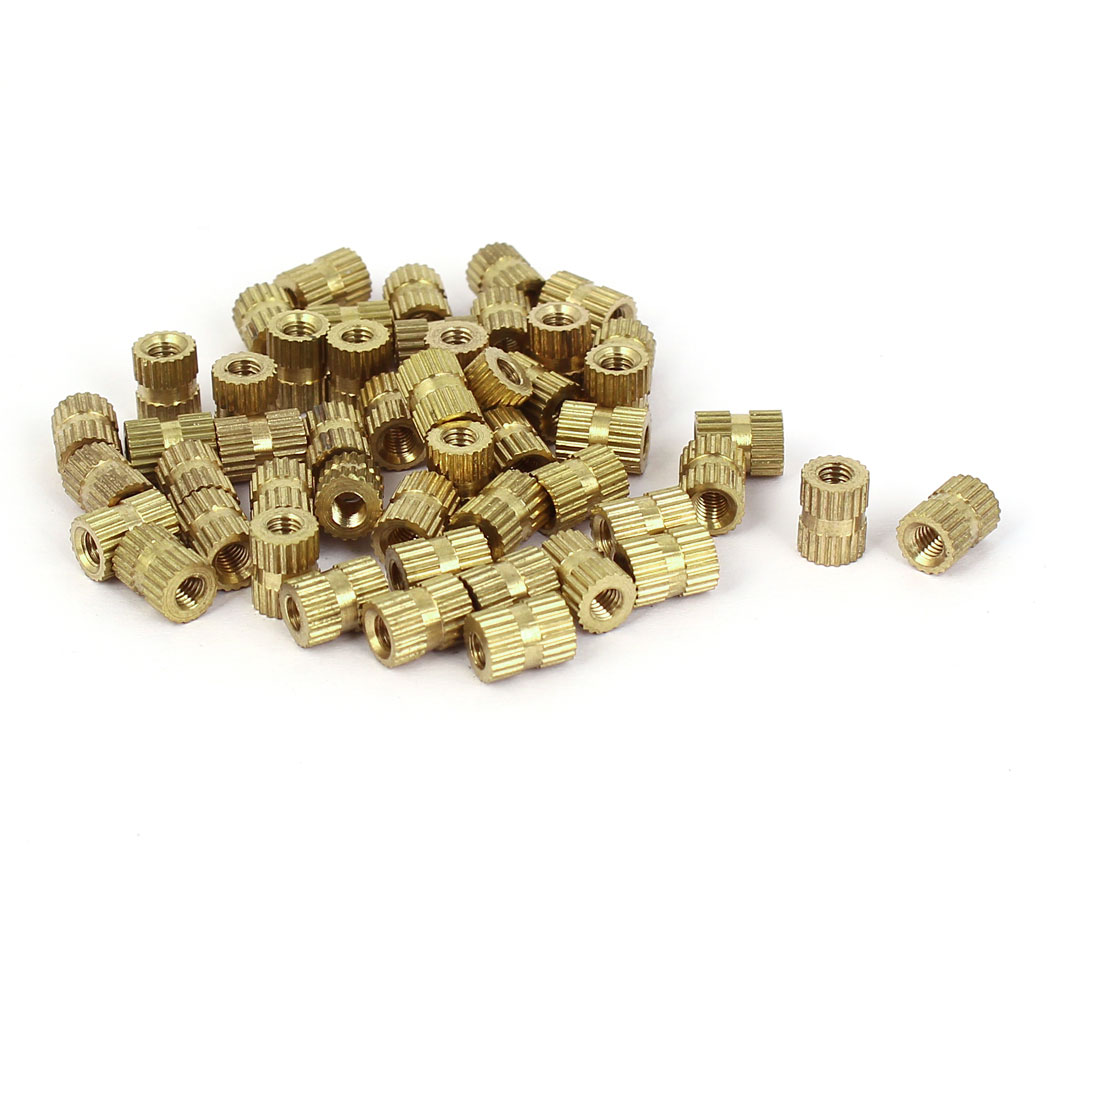 Solid Knurl Thread Insert Embedded Nut Fittings Brass Tone M3x7mmx5mm 50pcs